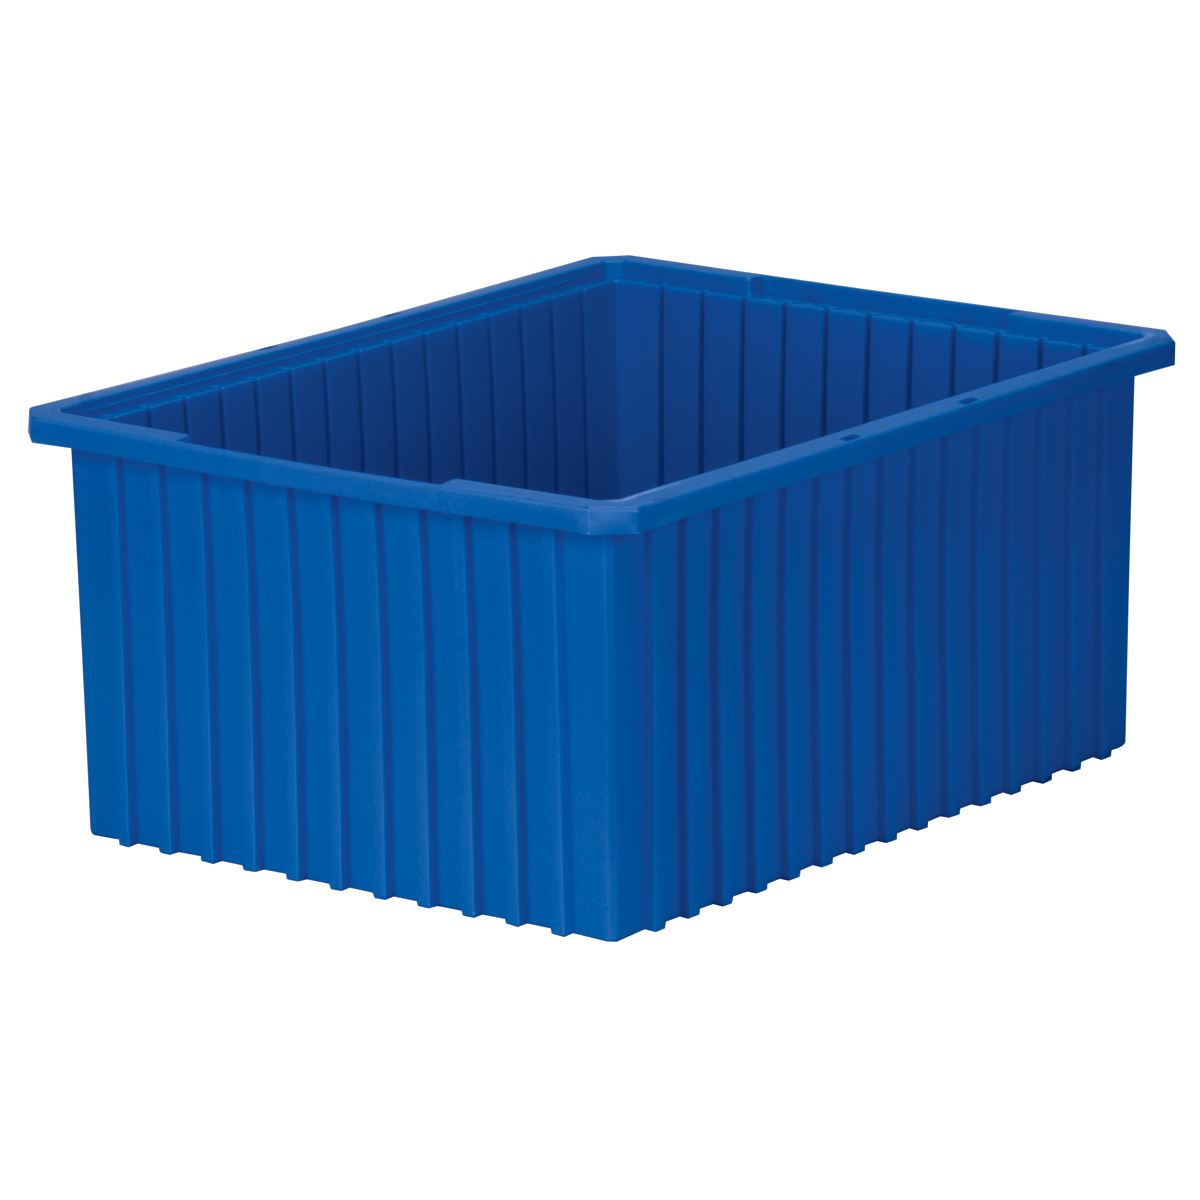 Akro-Grid Dividable Box 22-3/8 x 17-3/8 x 10, Blue (33220BLUE).  This item sold in carton quantities of 2.